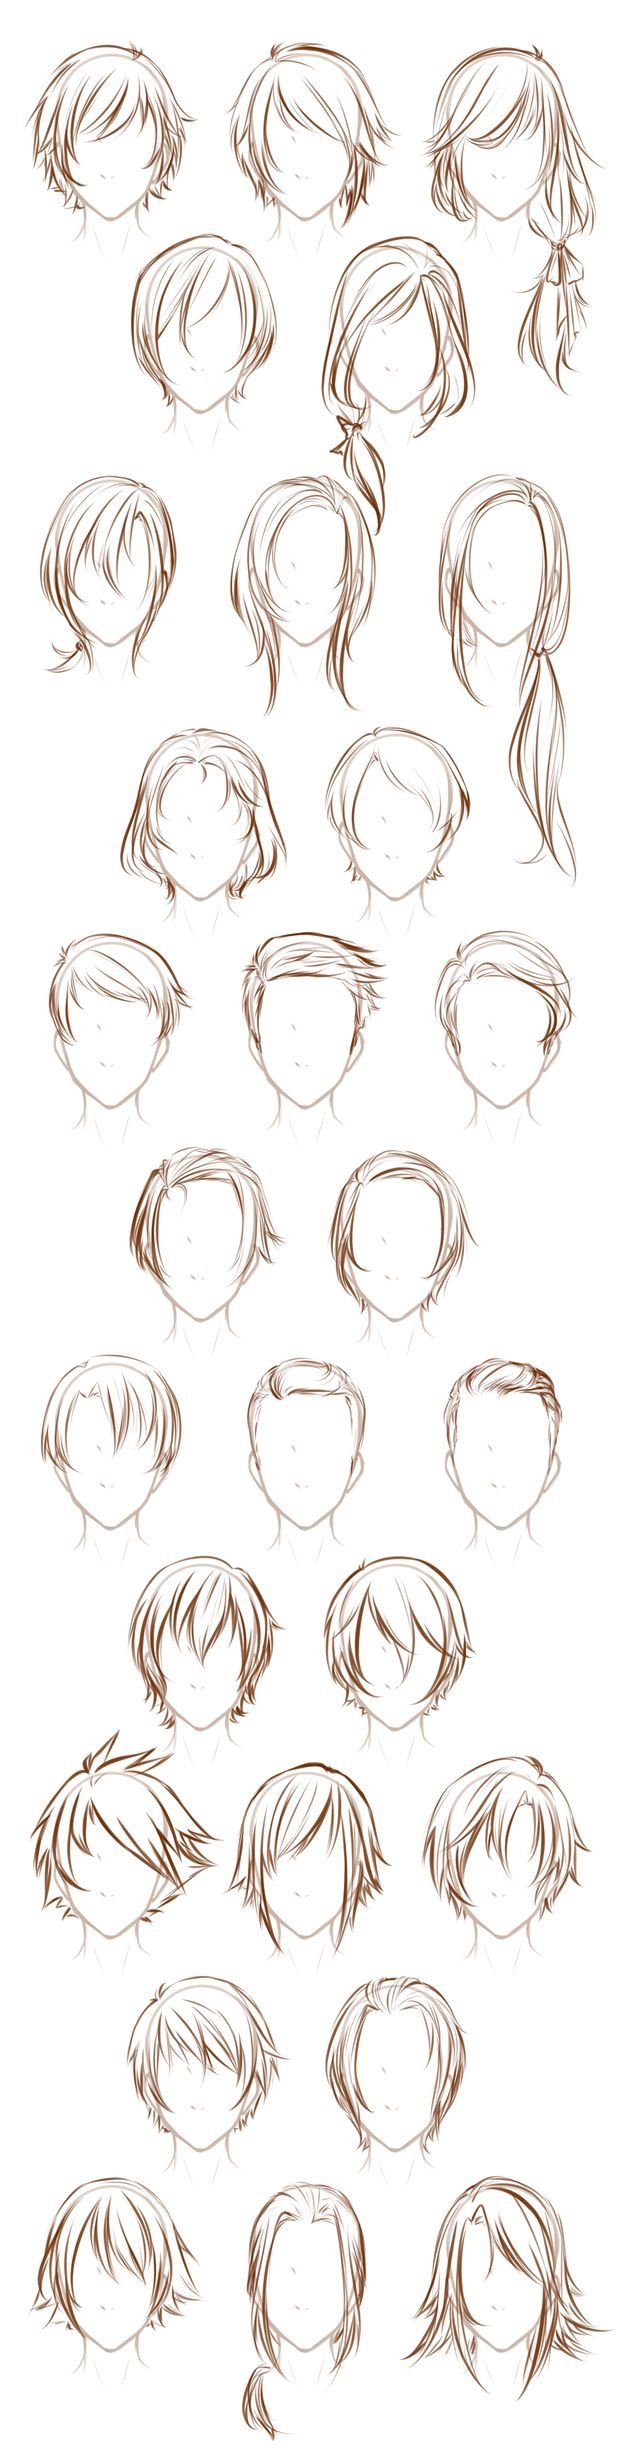 Undercut Drawing : undercut, drawing, Different, Types, Hairstyles, Women., Drawing, Tools,, Inspiration,, Creativity,, Reference, Sheet,, Guide,…, Hair,, Drawings,